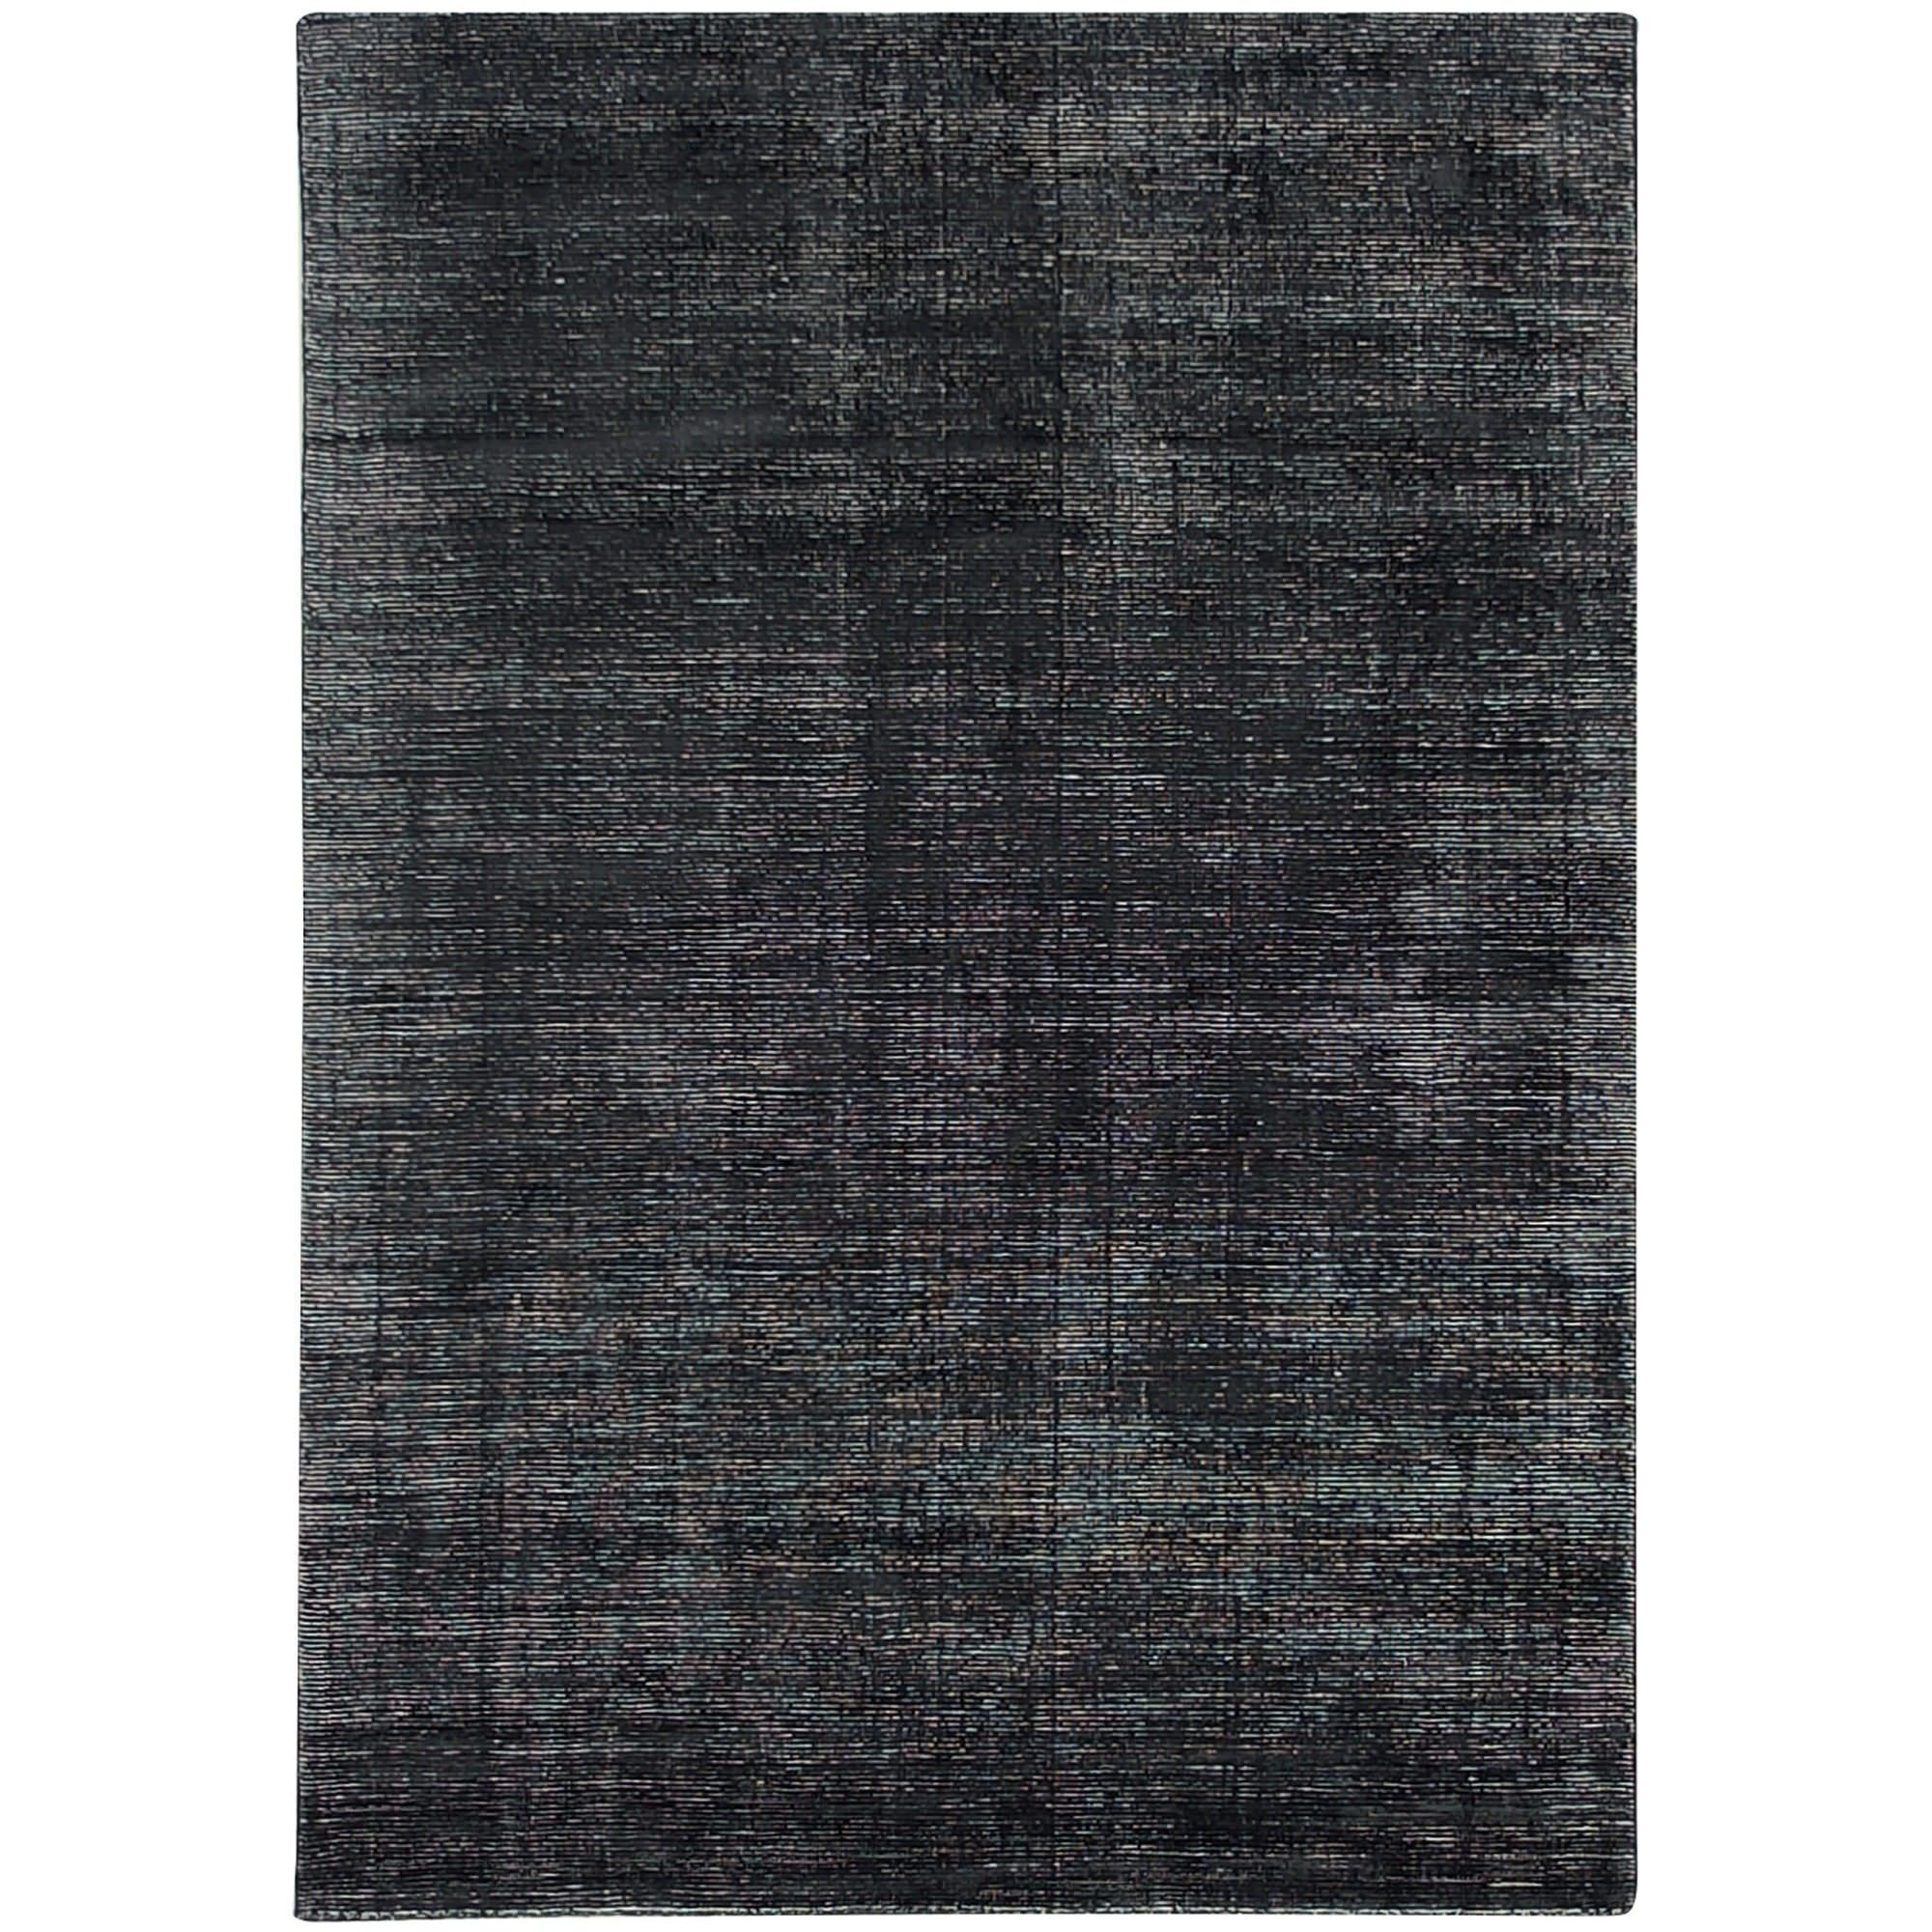 Elements Hand Knotted Wool Rug, 300x400cm, Charcoal